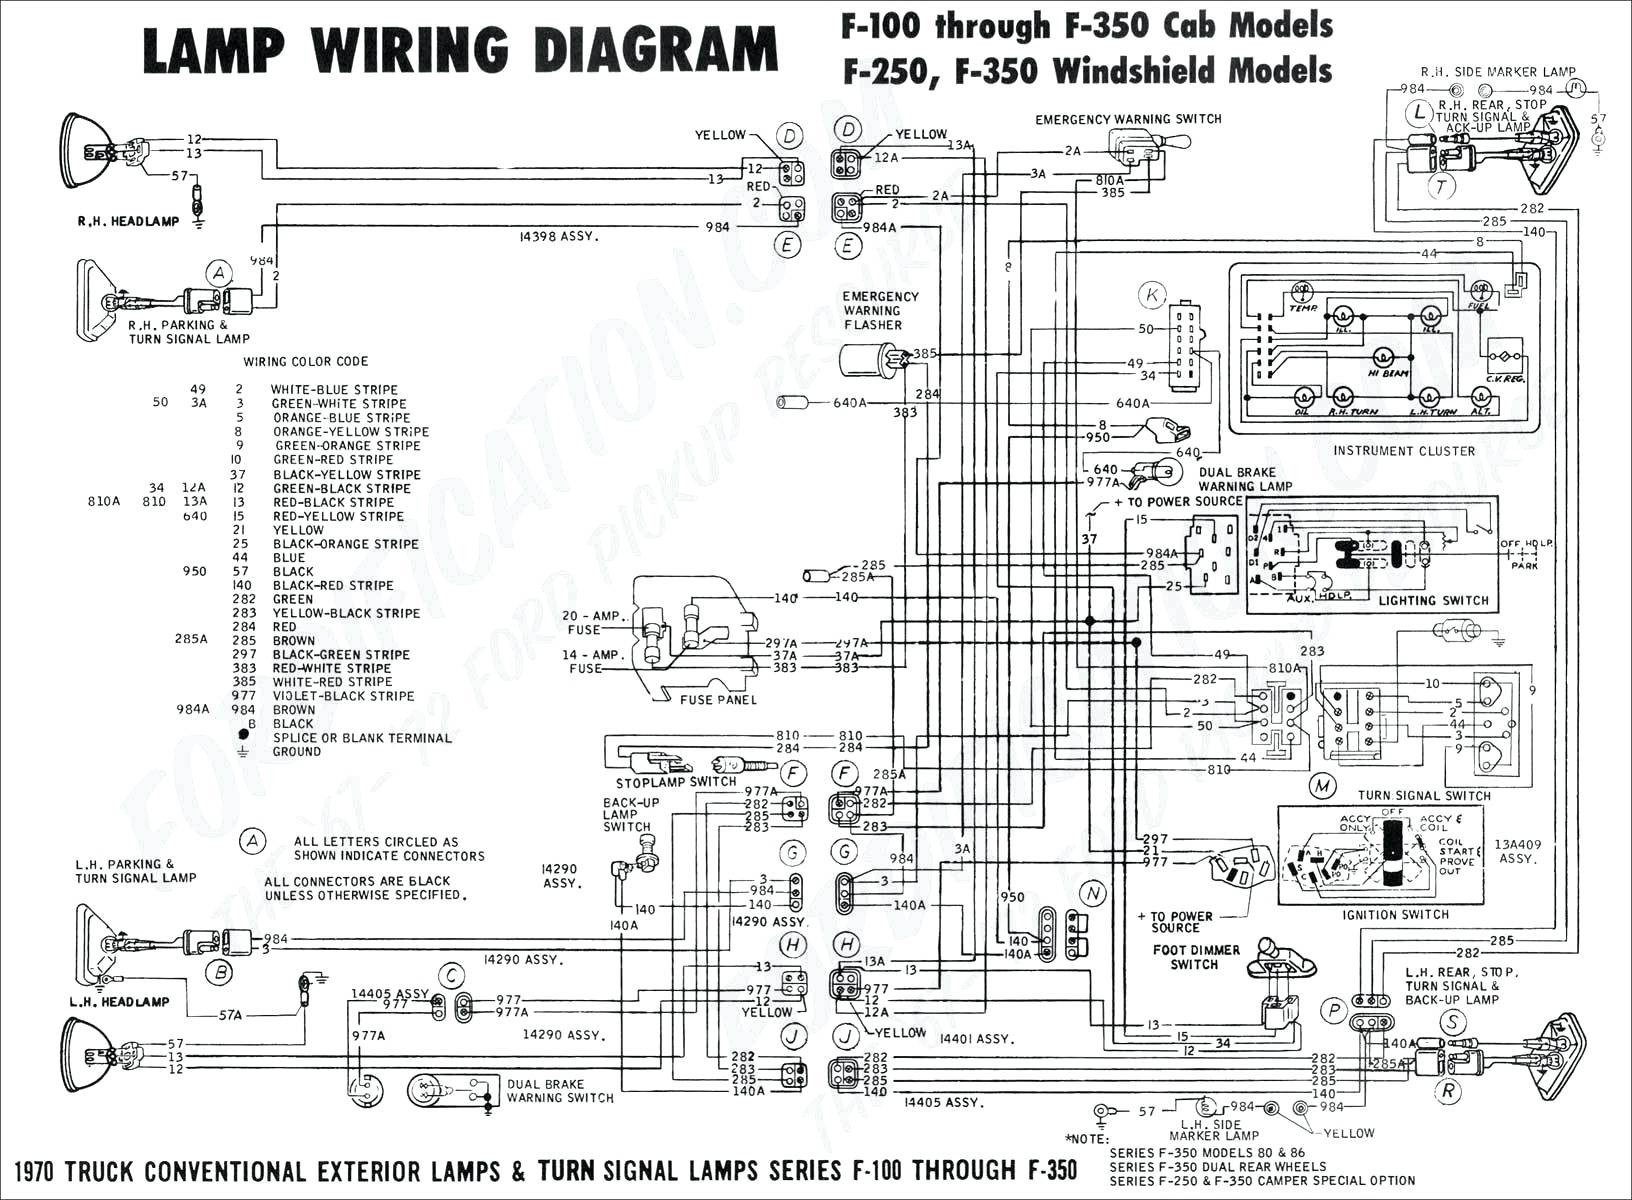 1994 ford Ranger Parts Diagram 2000 ford Ranger Horn Wiring Another Blog About Wiring Diagram •